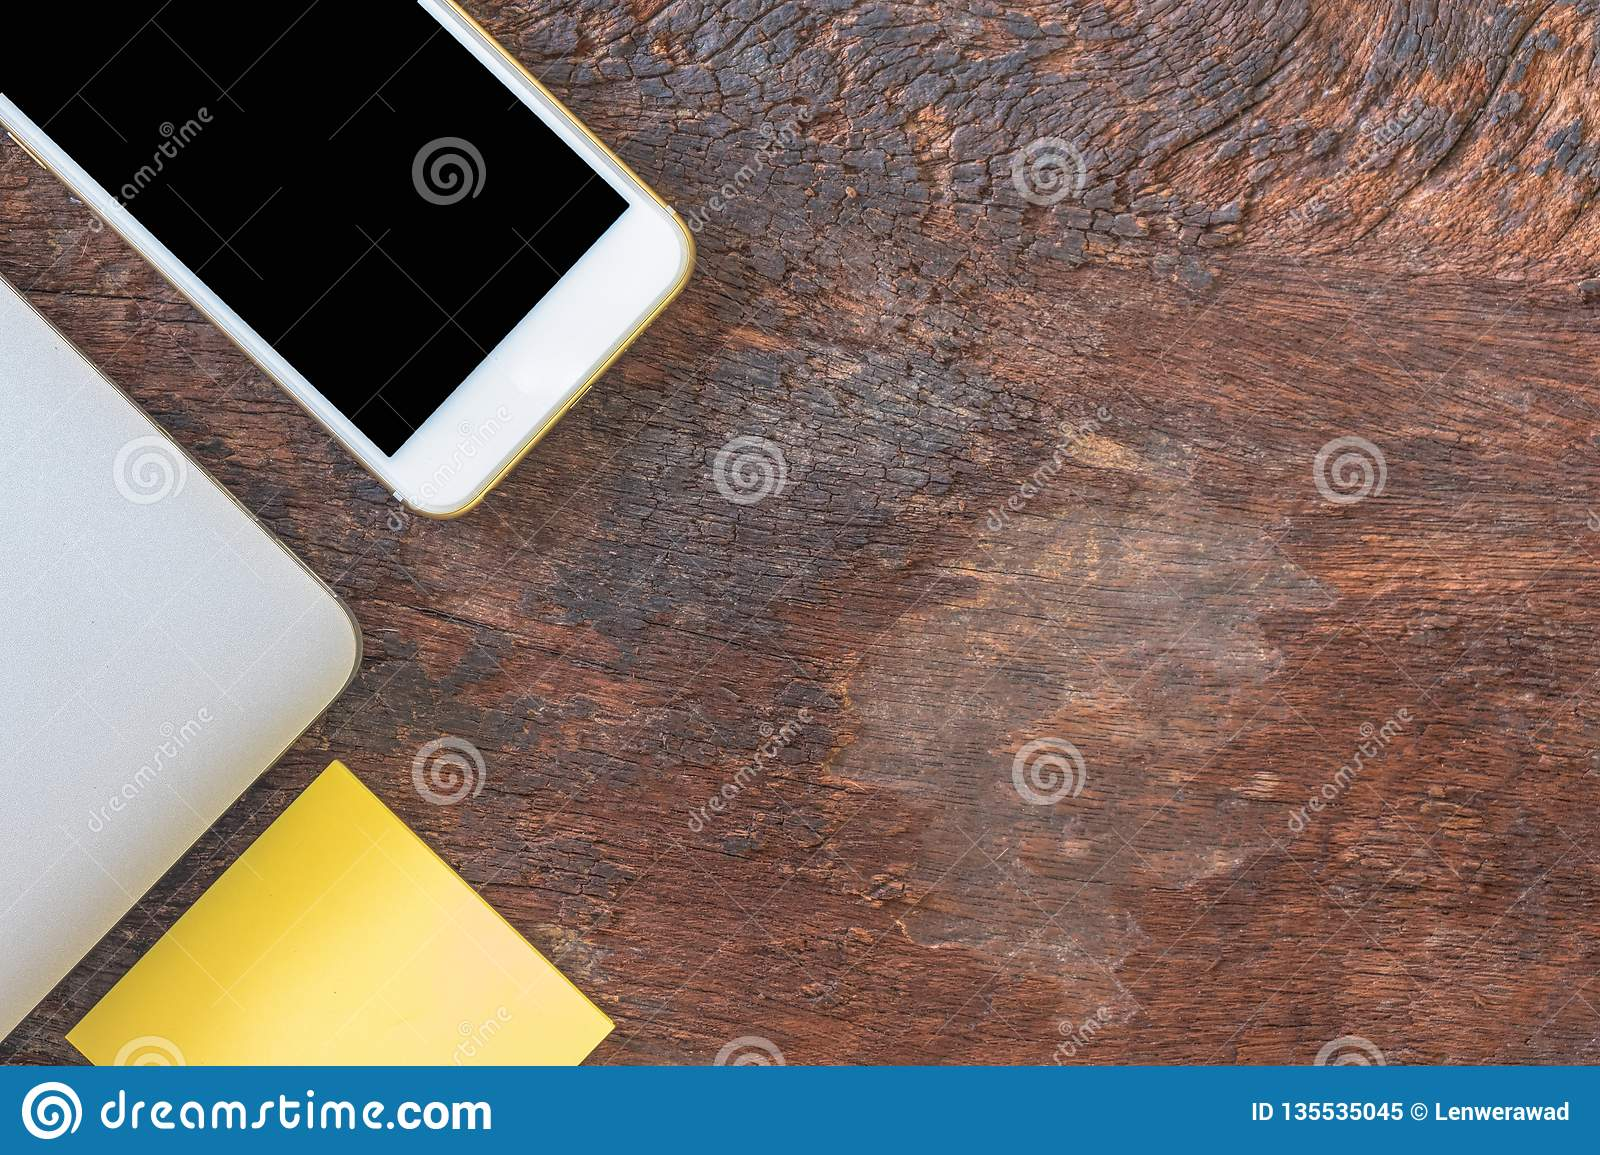 Top view smartphone, laptop, and post note or post it on old wooden background.